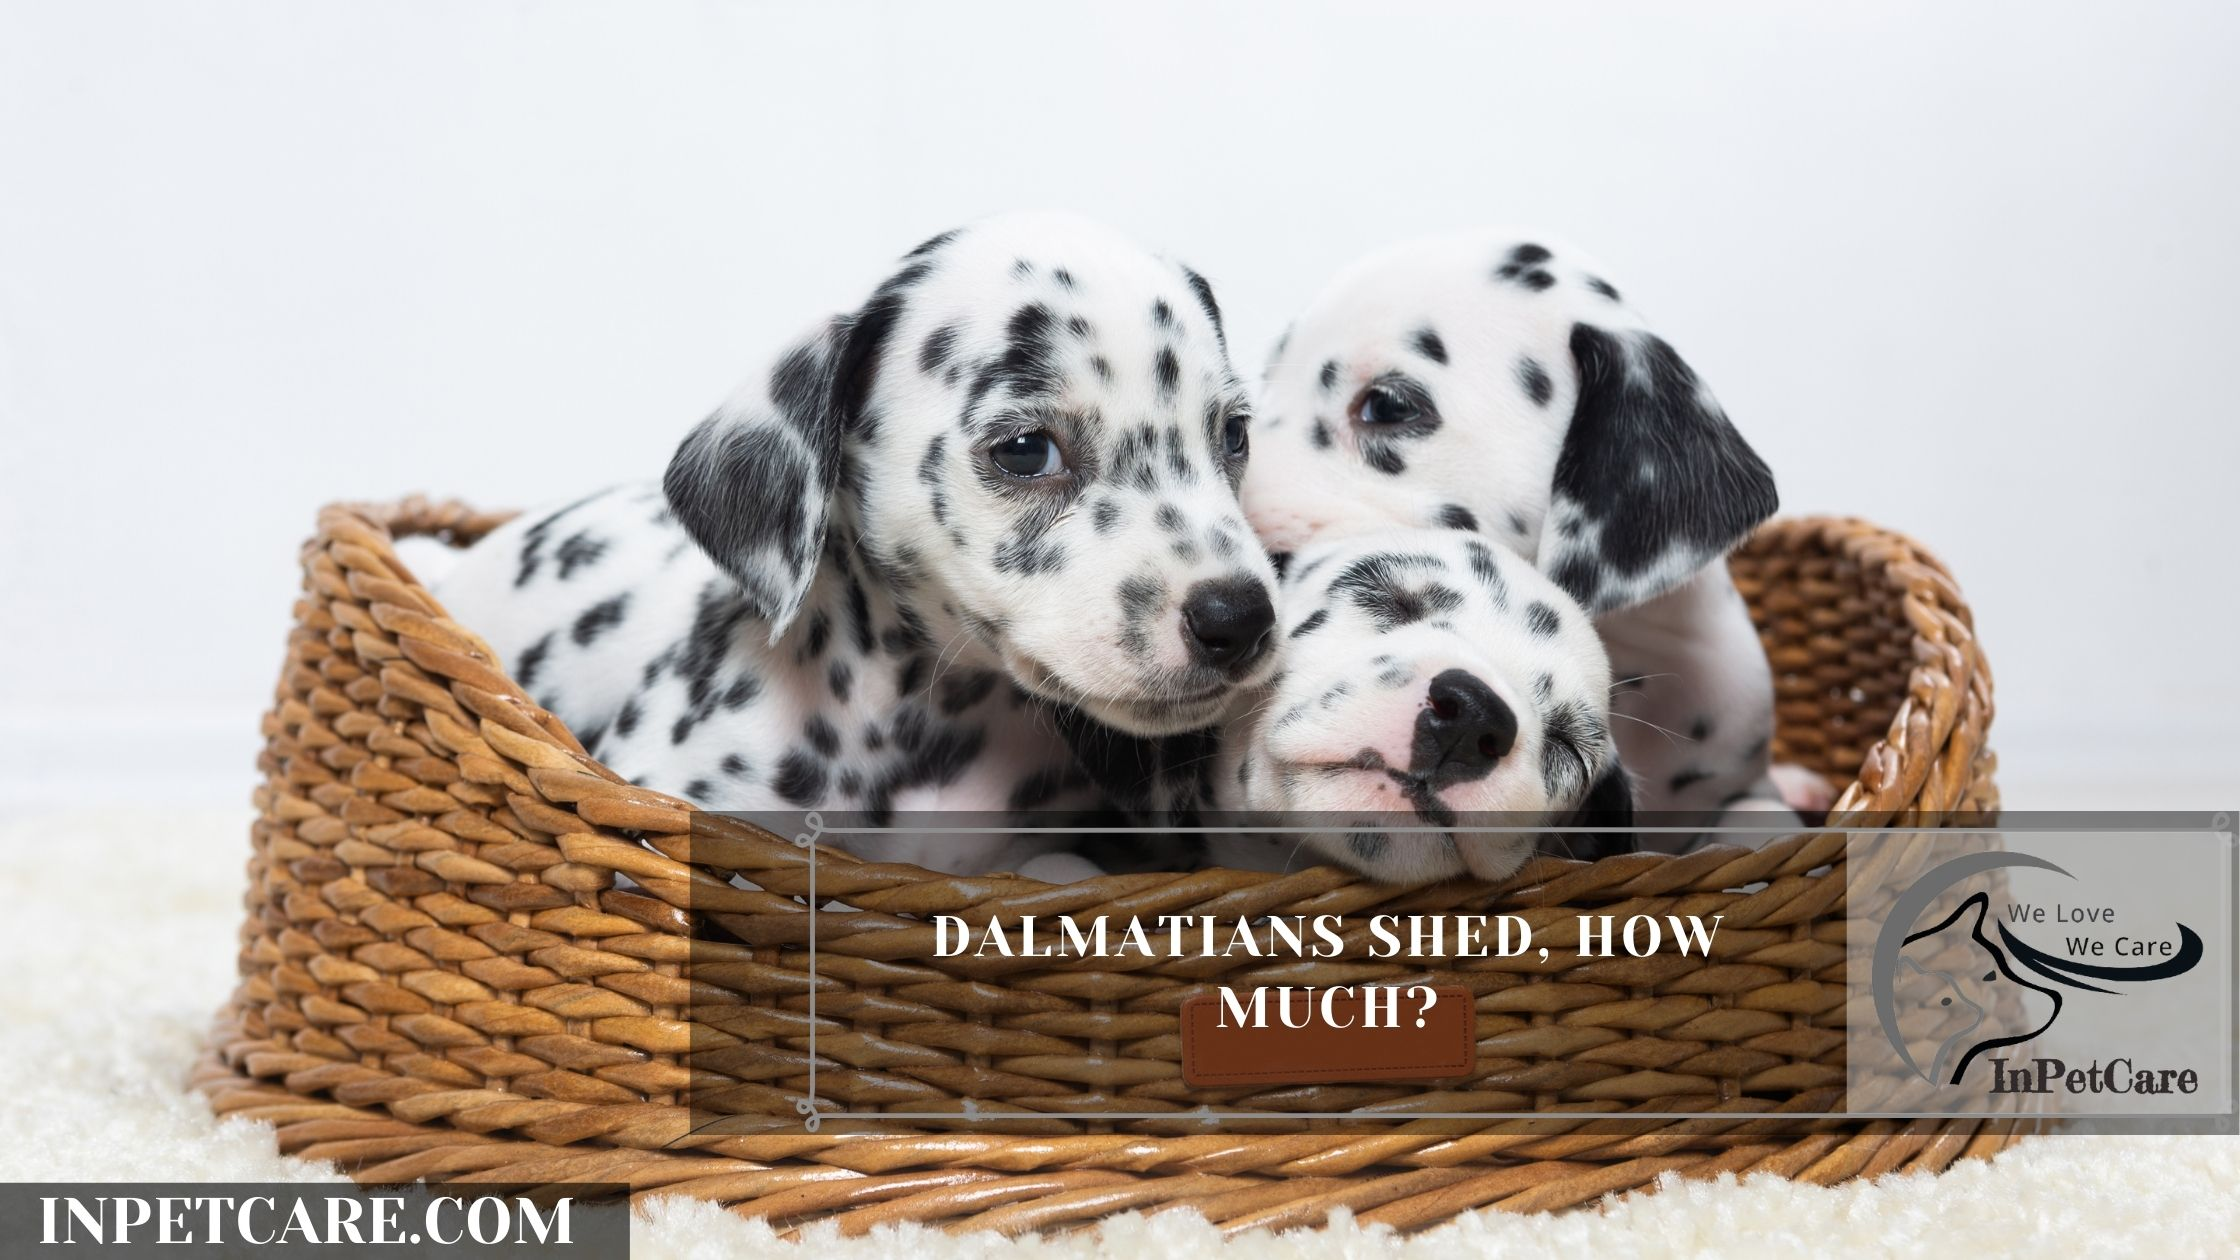 Dalmatians shed, how much?